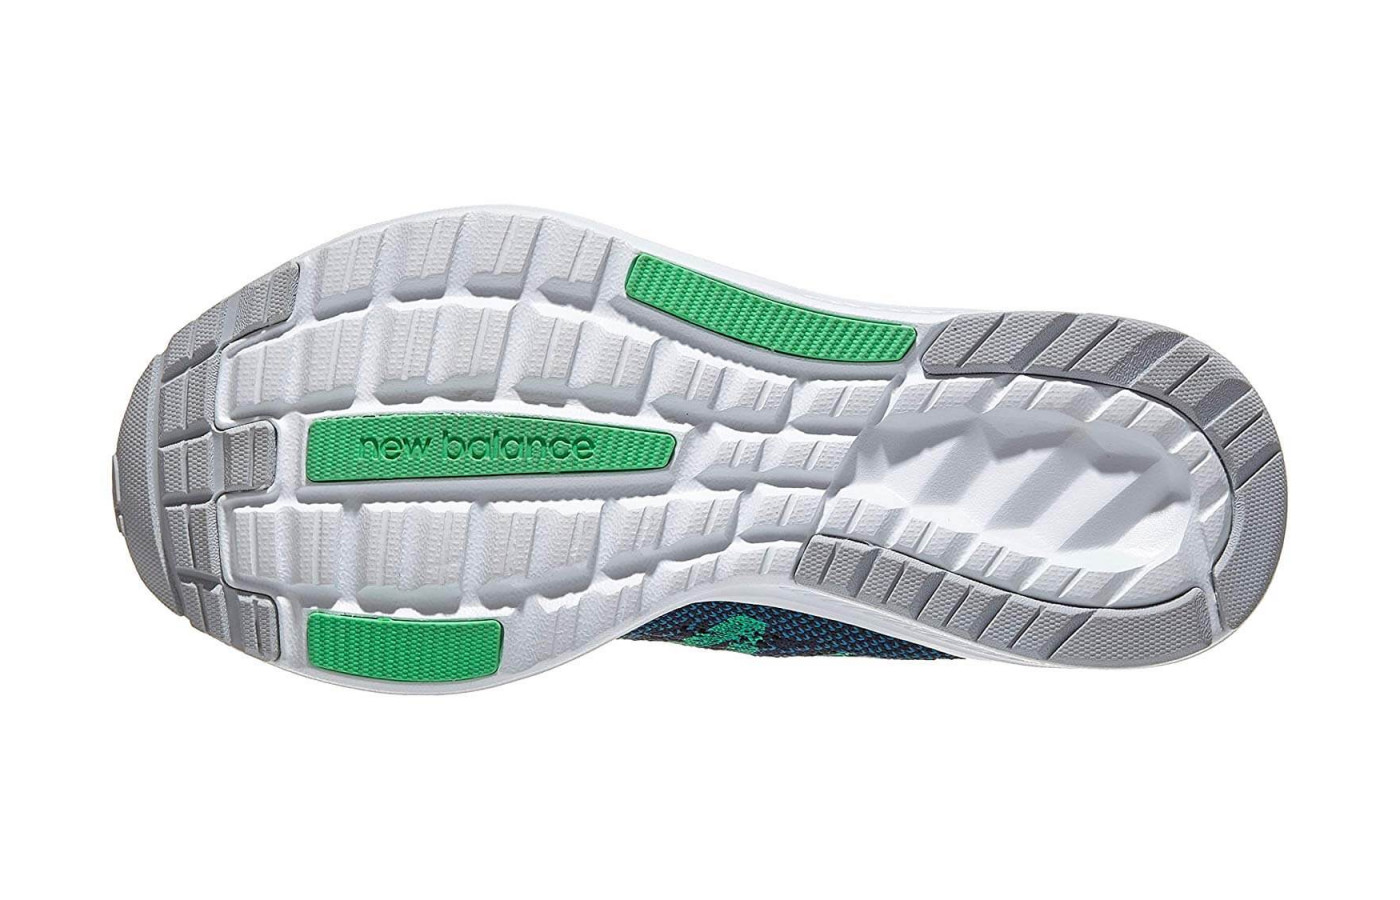 Ground-contact REVlite forms the 890v7's outsole.